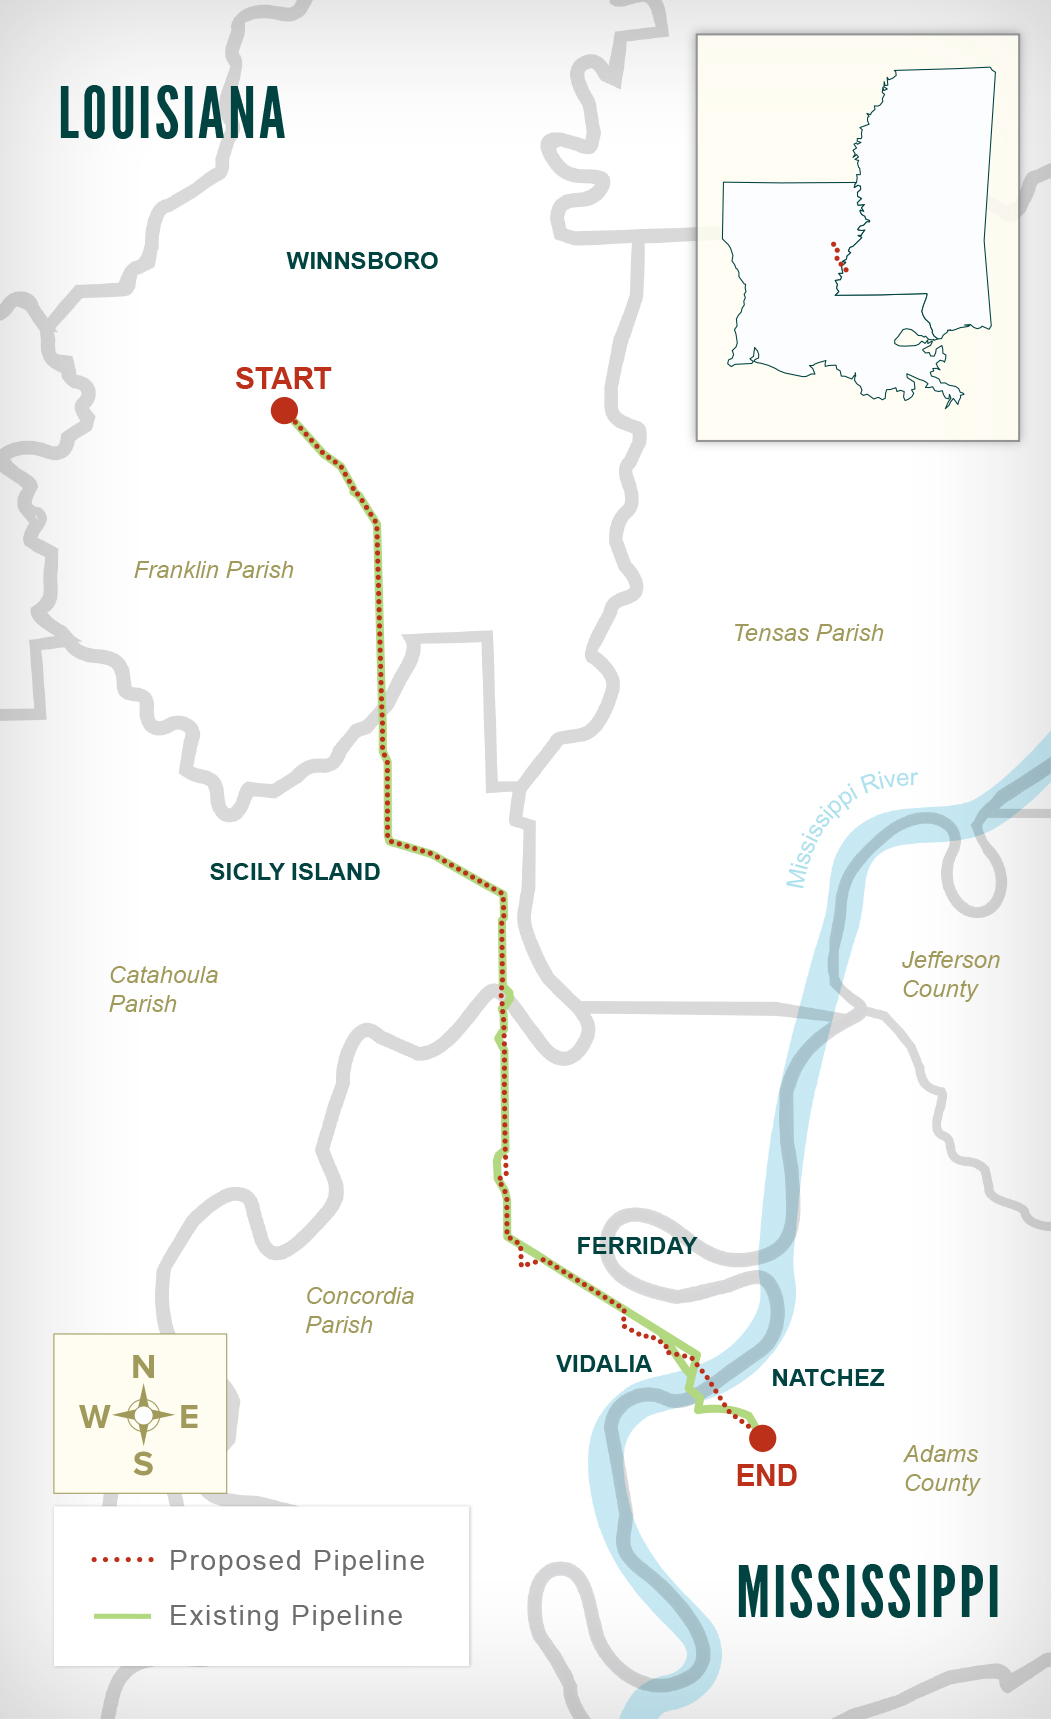 Midla-Natchez Pipeline